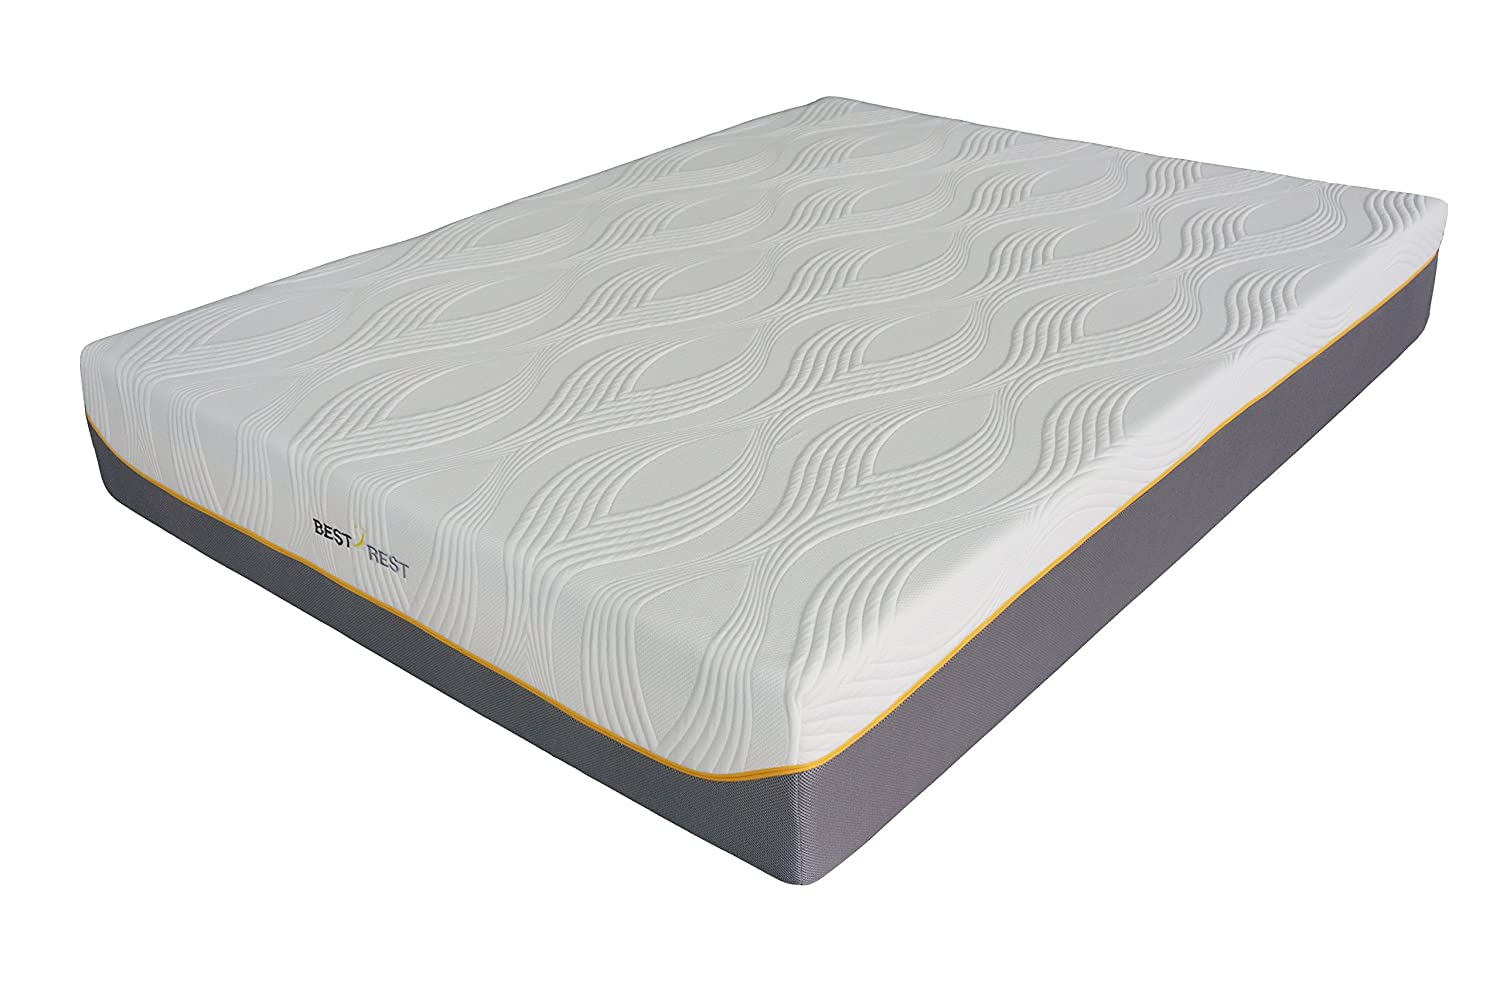 Best Rest Cooling Gel Memory Foam 11 Inch Mattress with CertiPUR-US Certified Foam, Queen